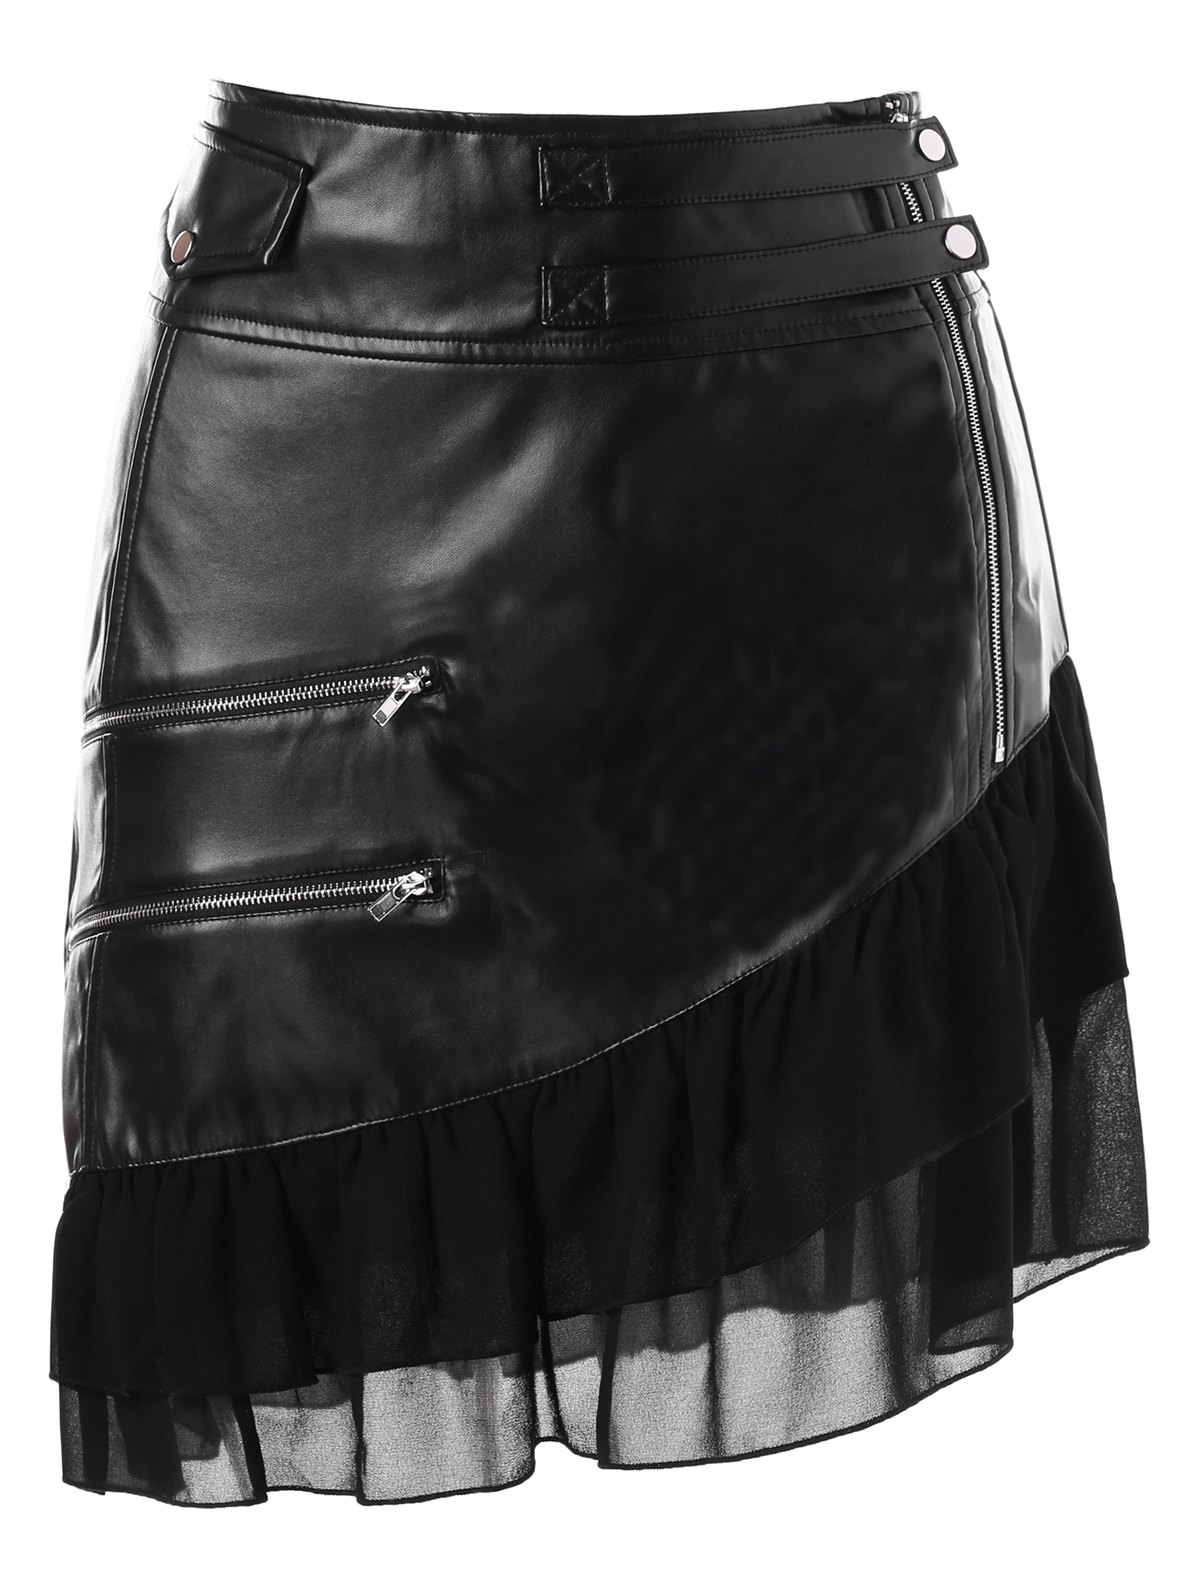 Discount Zipper Flounce Panel Faux Leather Skirt